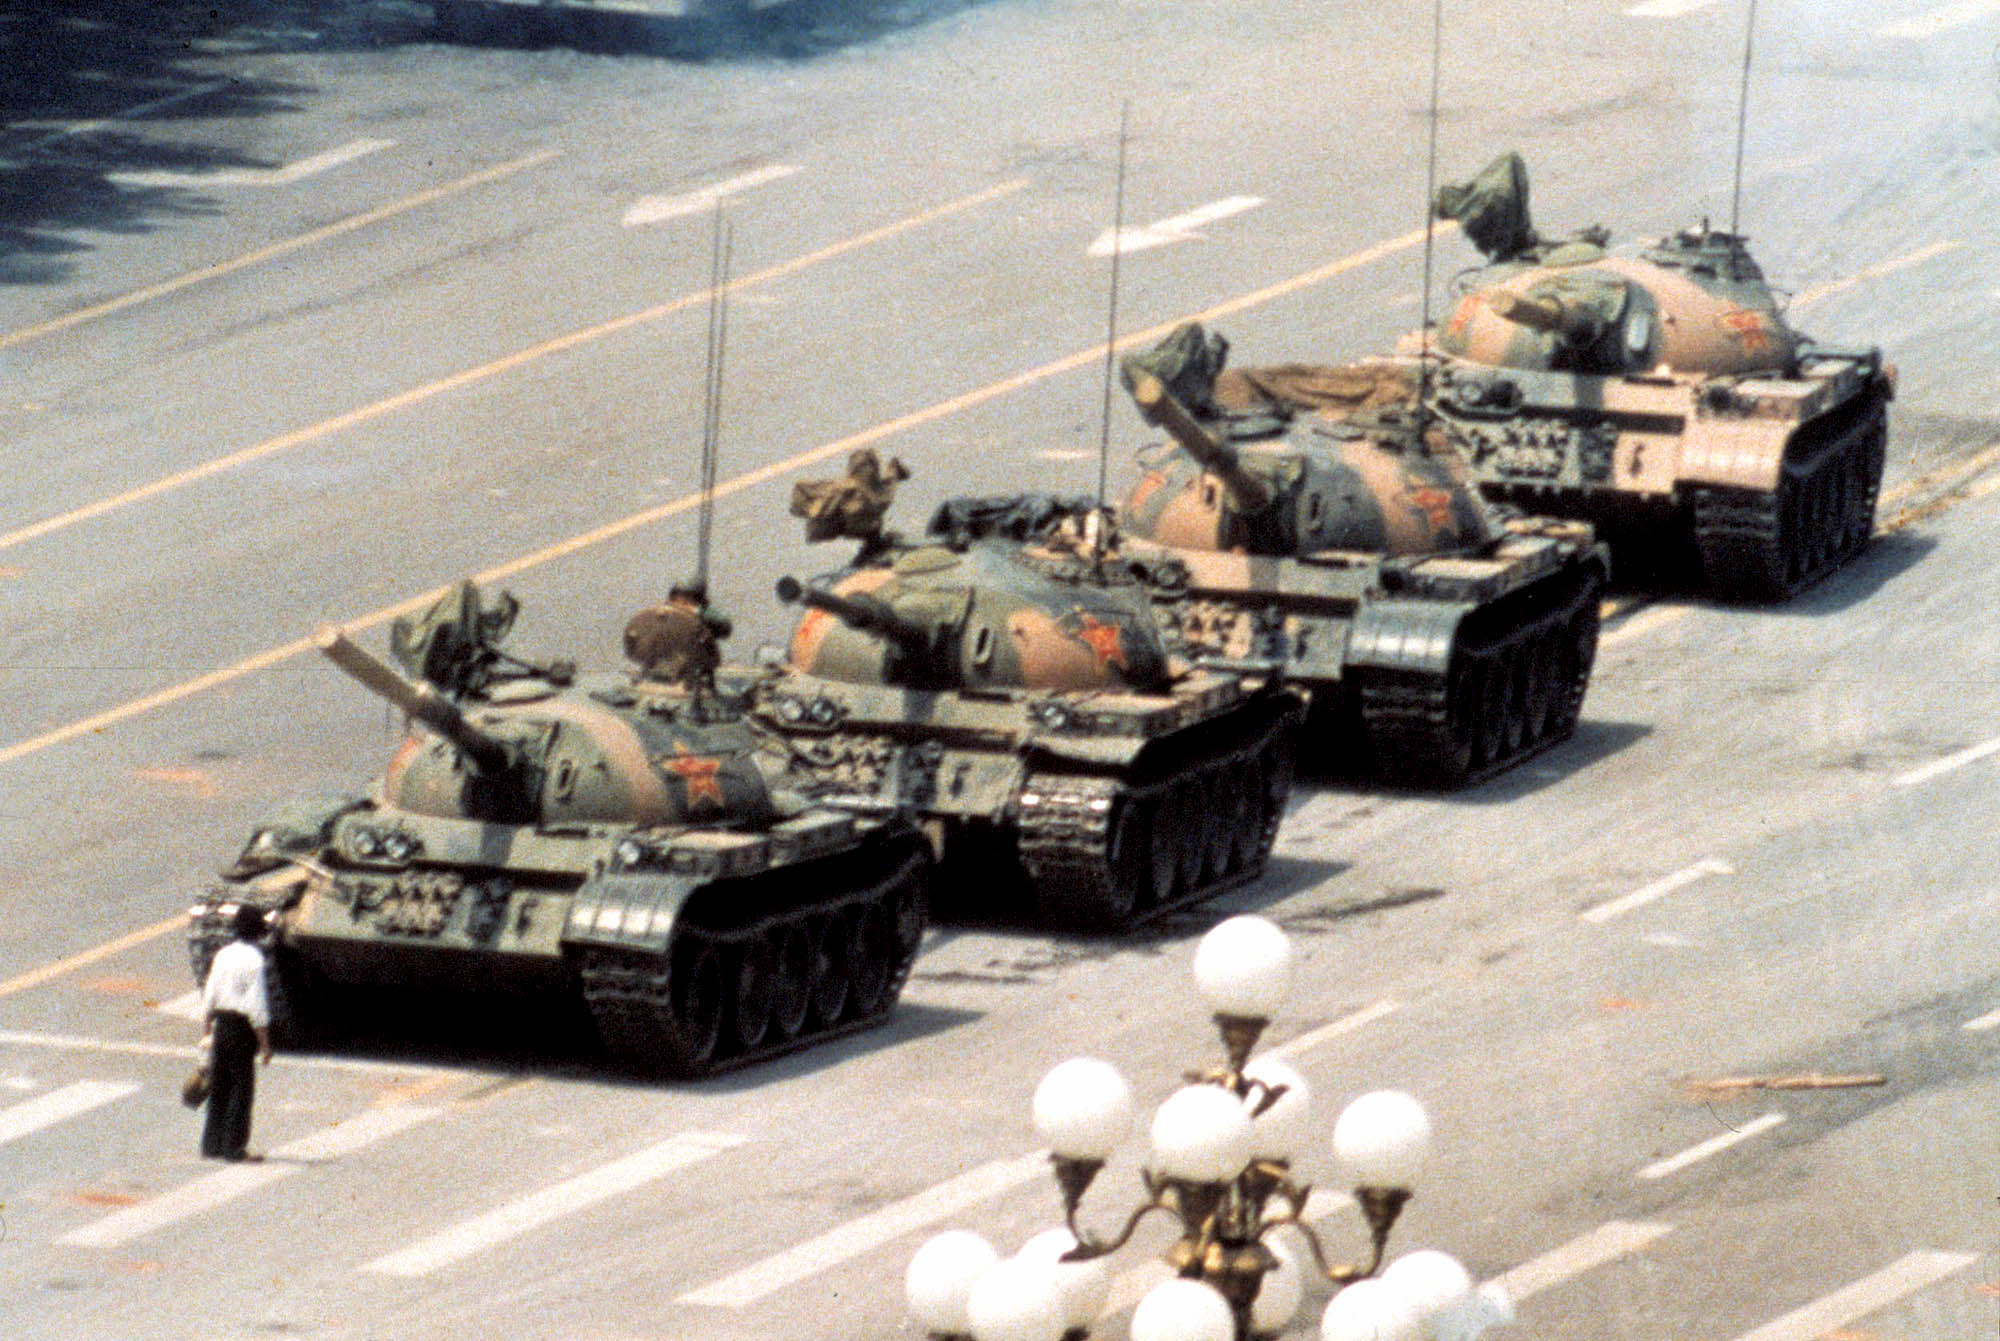 the-iconic-photo-of-tank-man-the-unknown-rebel-who-stood-in-front-of-a-column-of-chinese-tanks-in-an-act-of-defiance-following-the-tiananmen-square-protests-of-1989